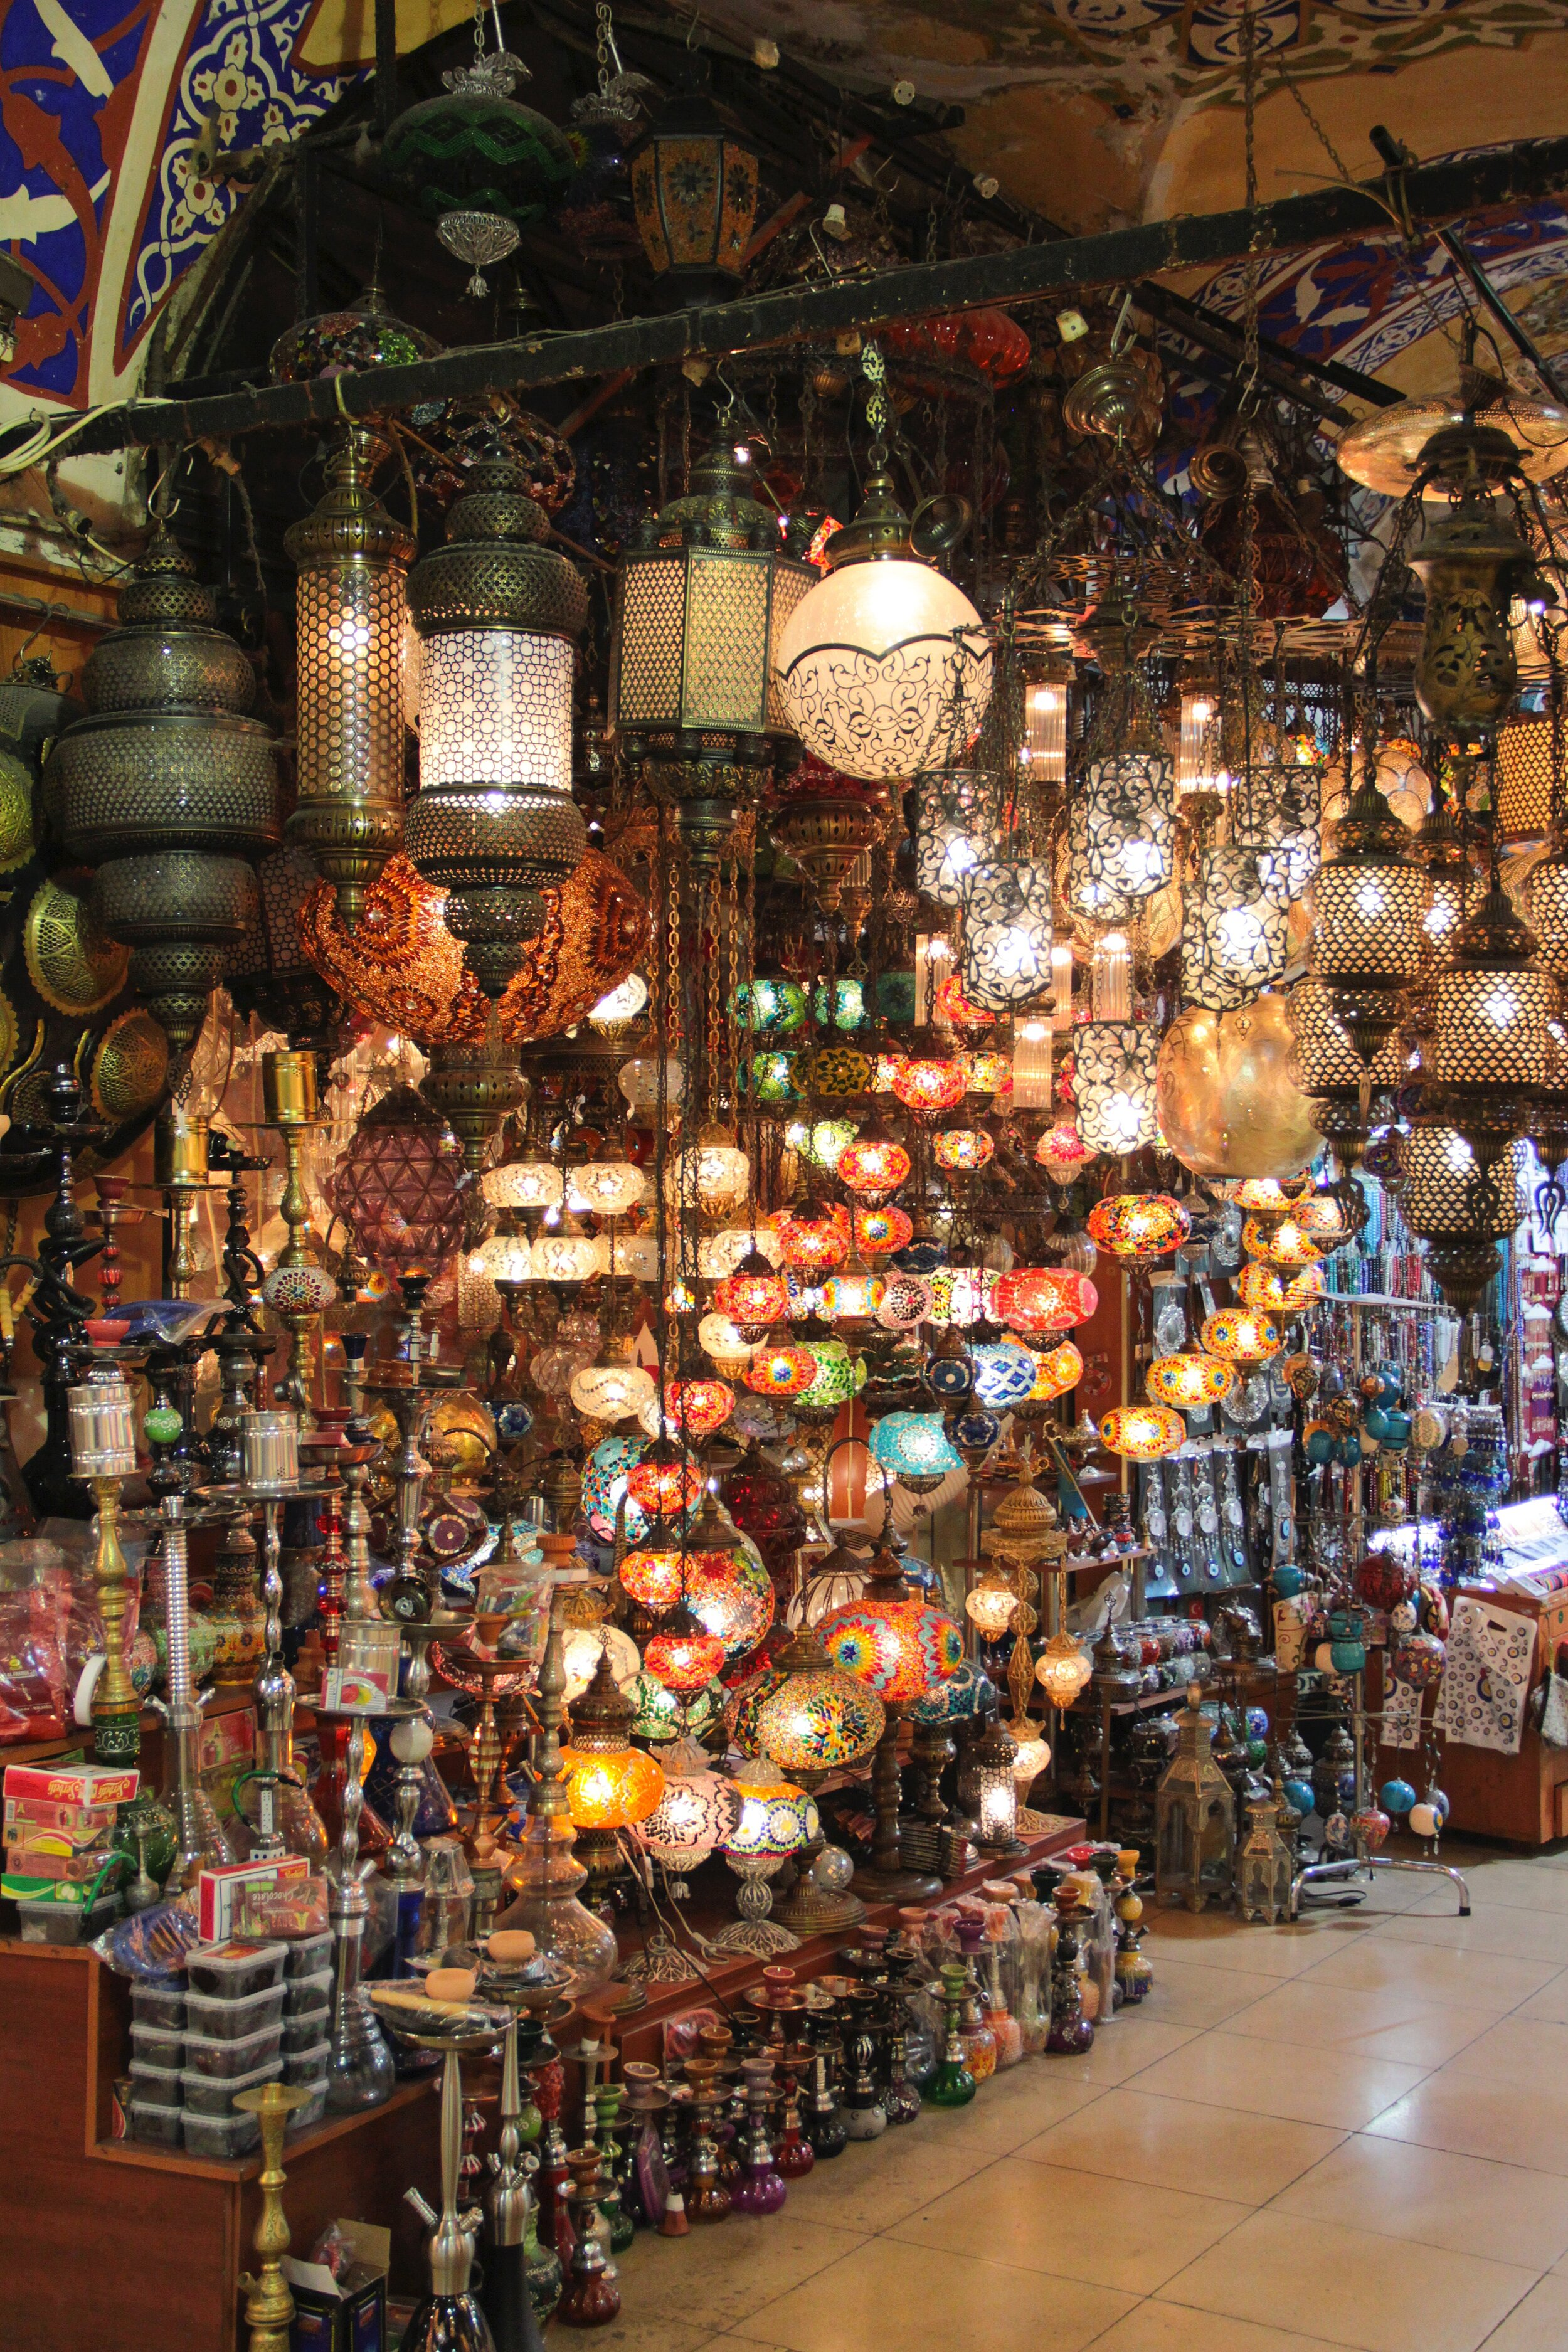 Free yourself from the uncertainties of bargaining in a foreign bazaar -